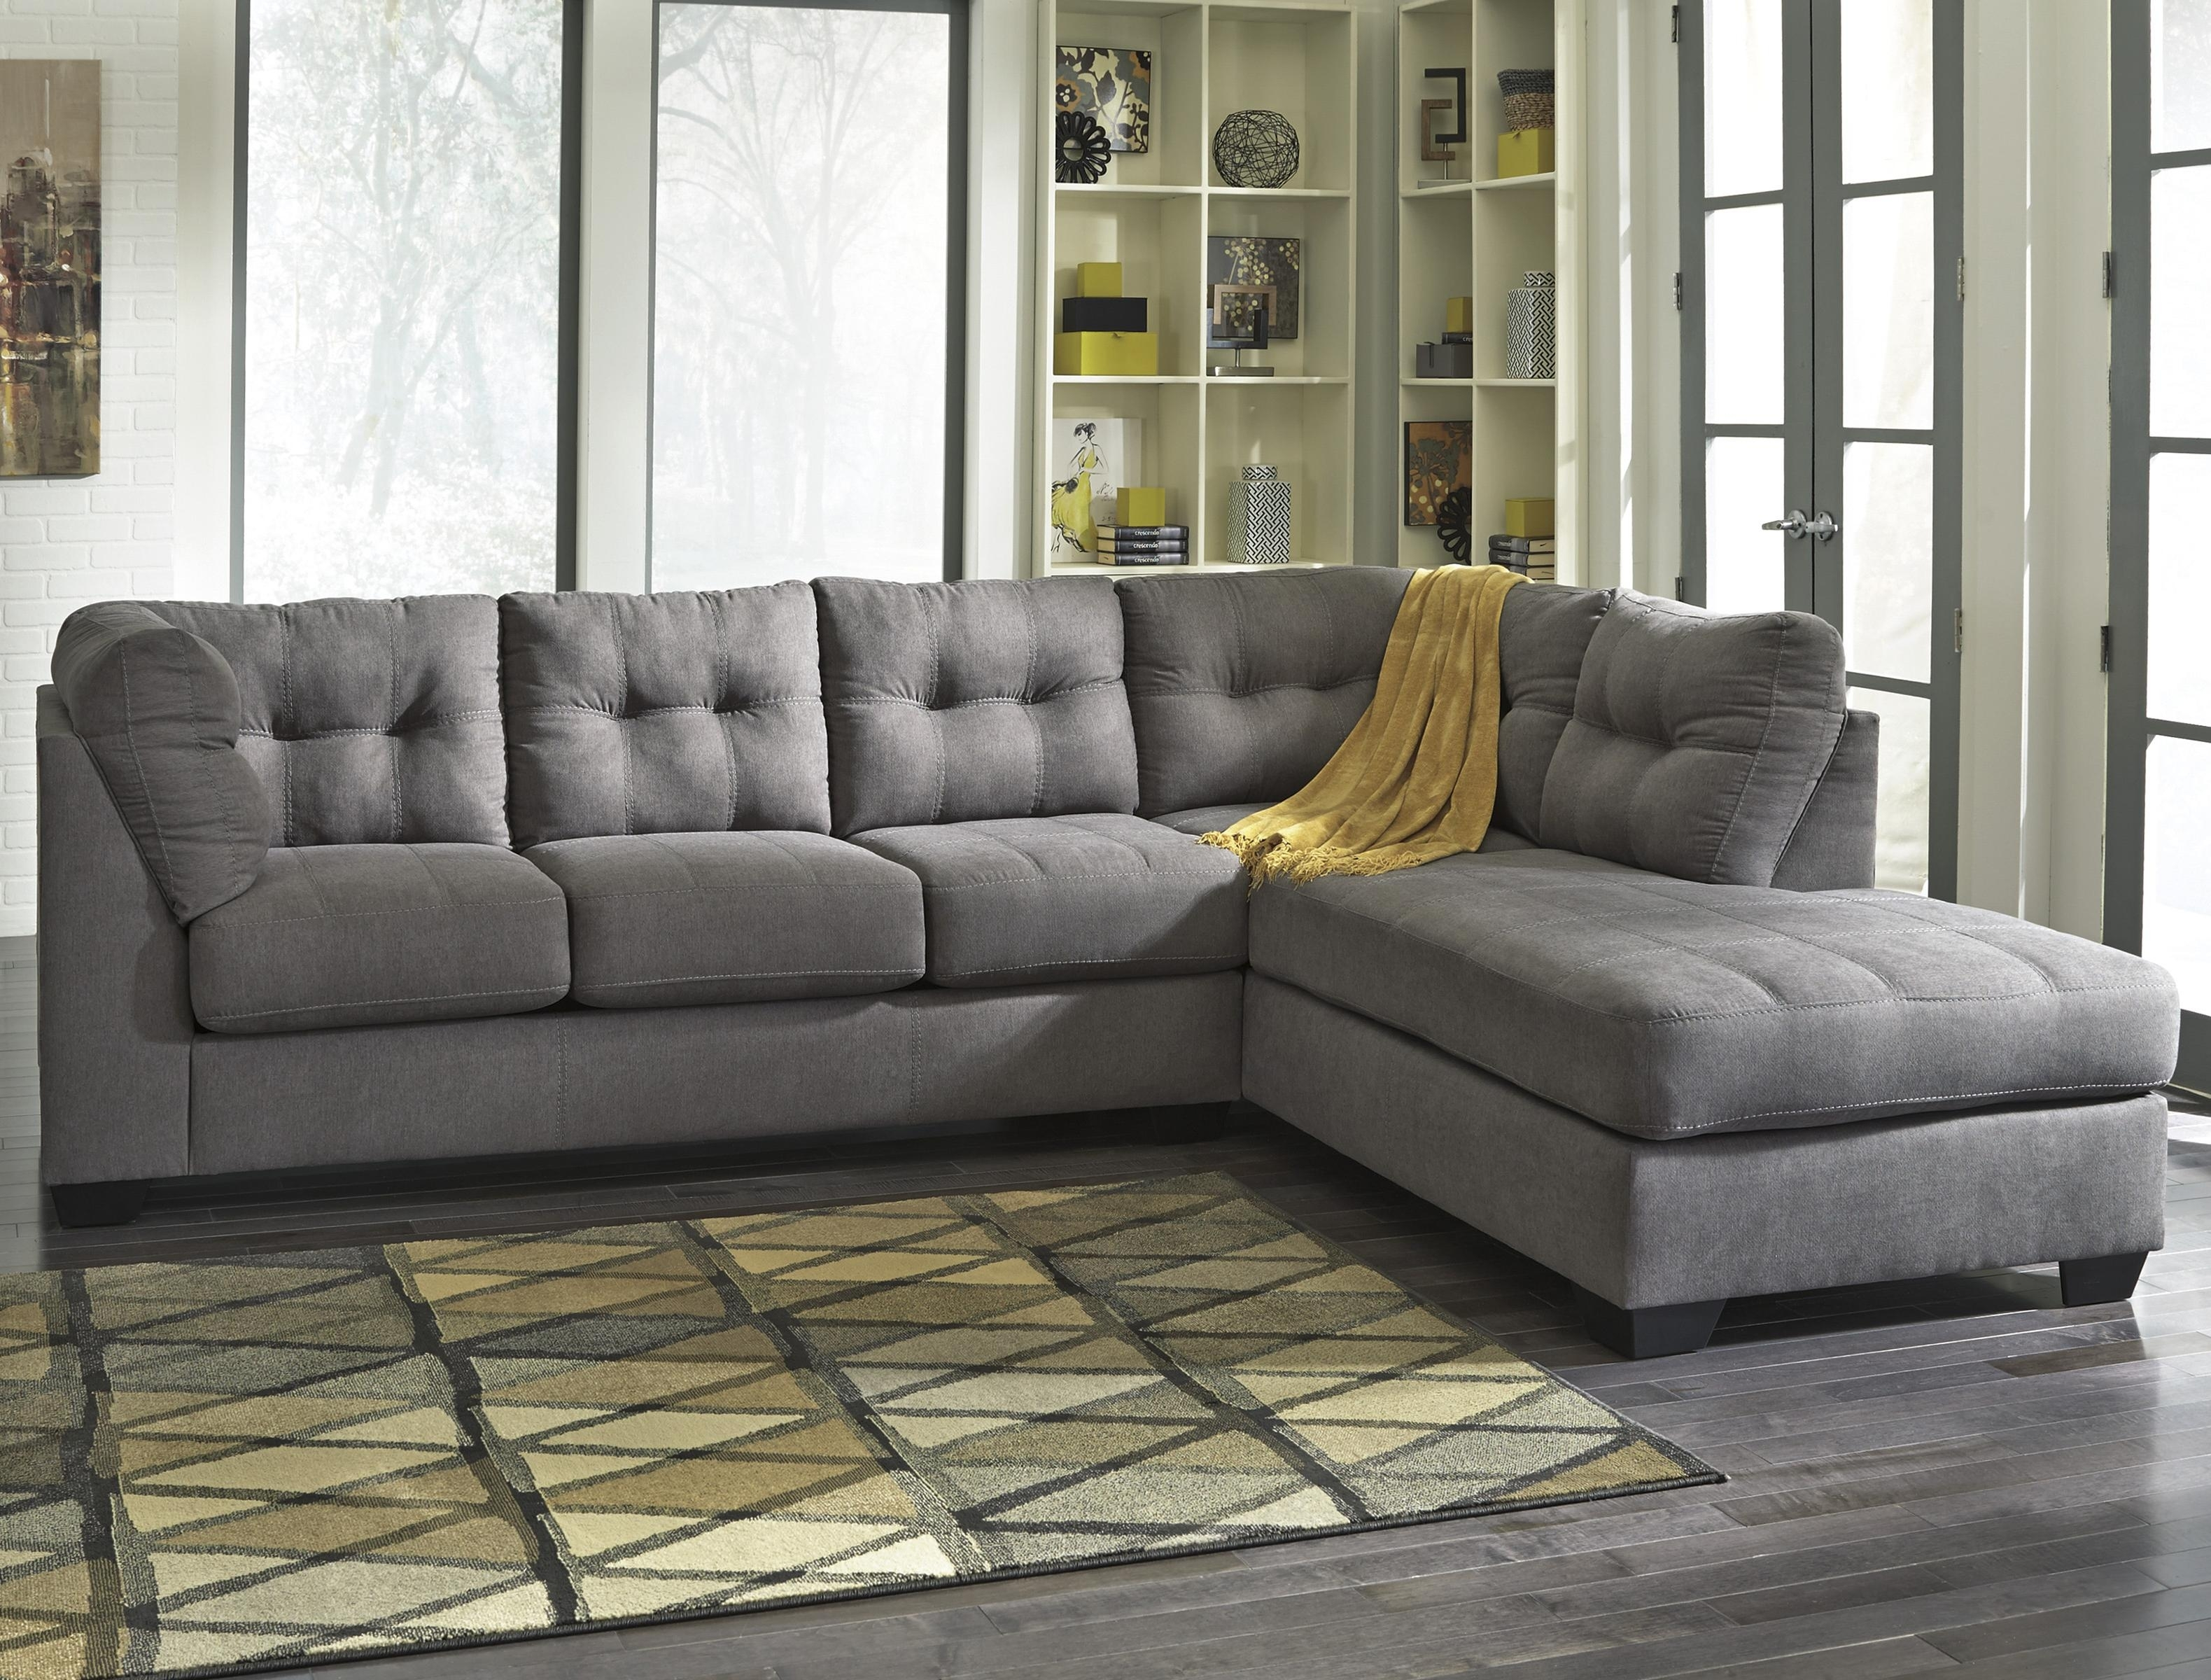 2 Piece Sectional With Right Chaisebenchcraft | Wolf And Intended For Lancaster Pa Sectional Sofas (View 7 of 10)